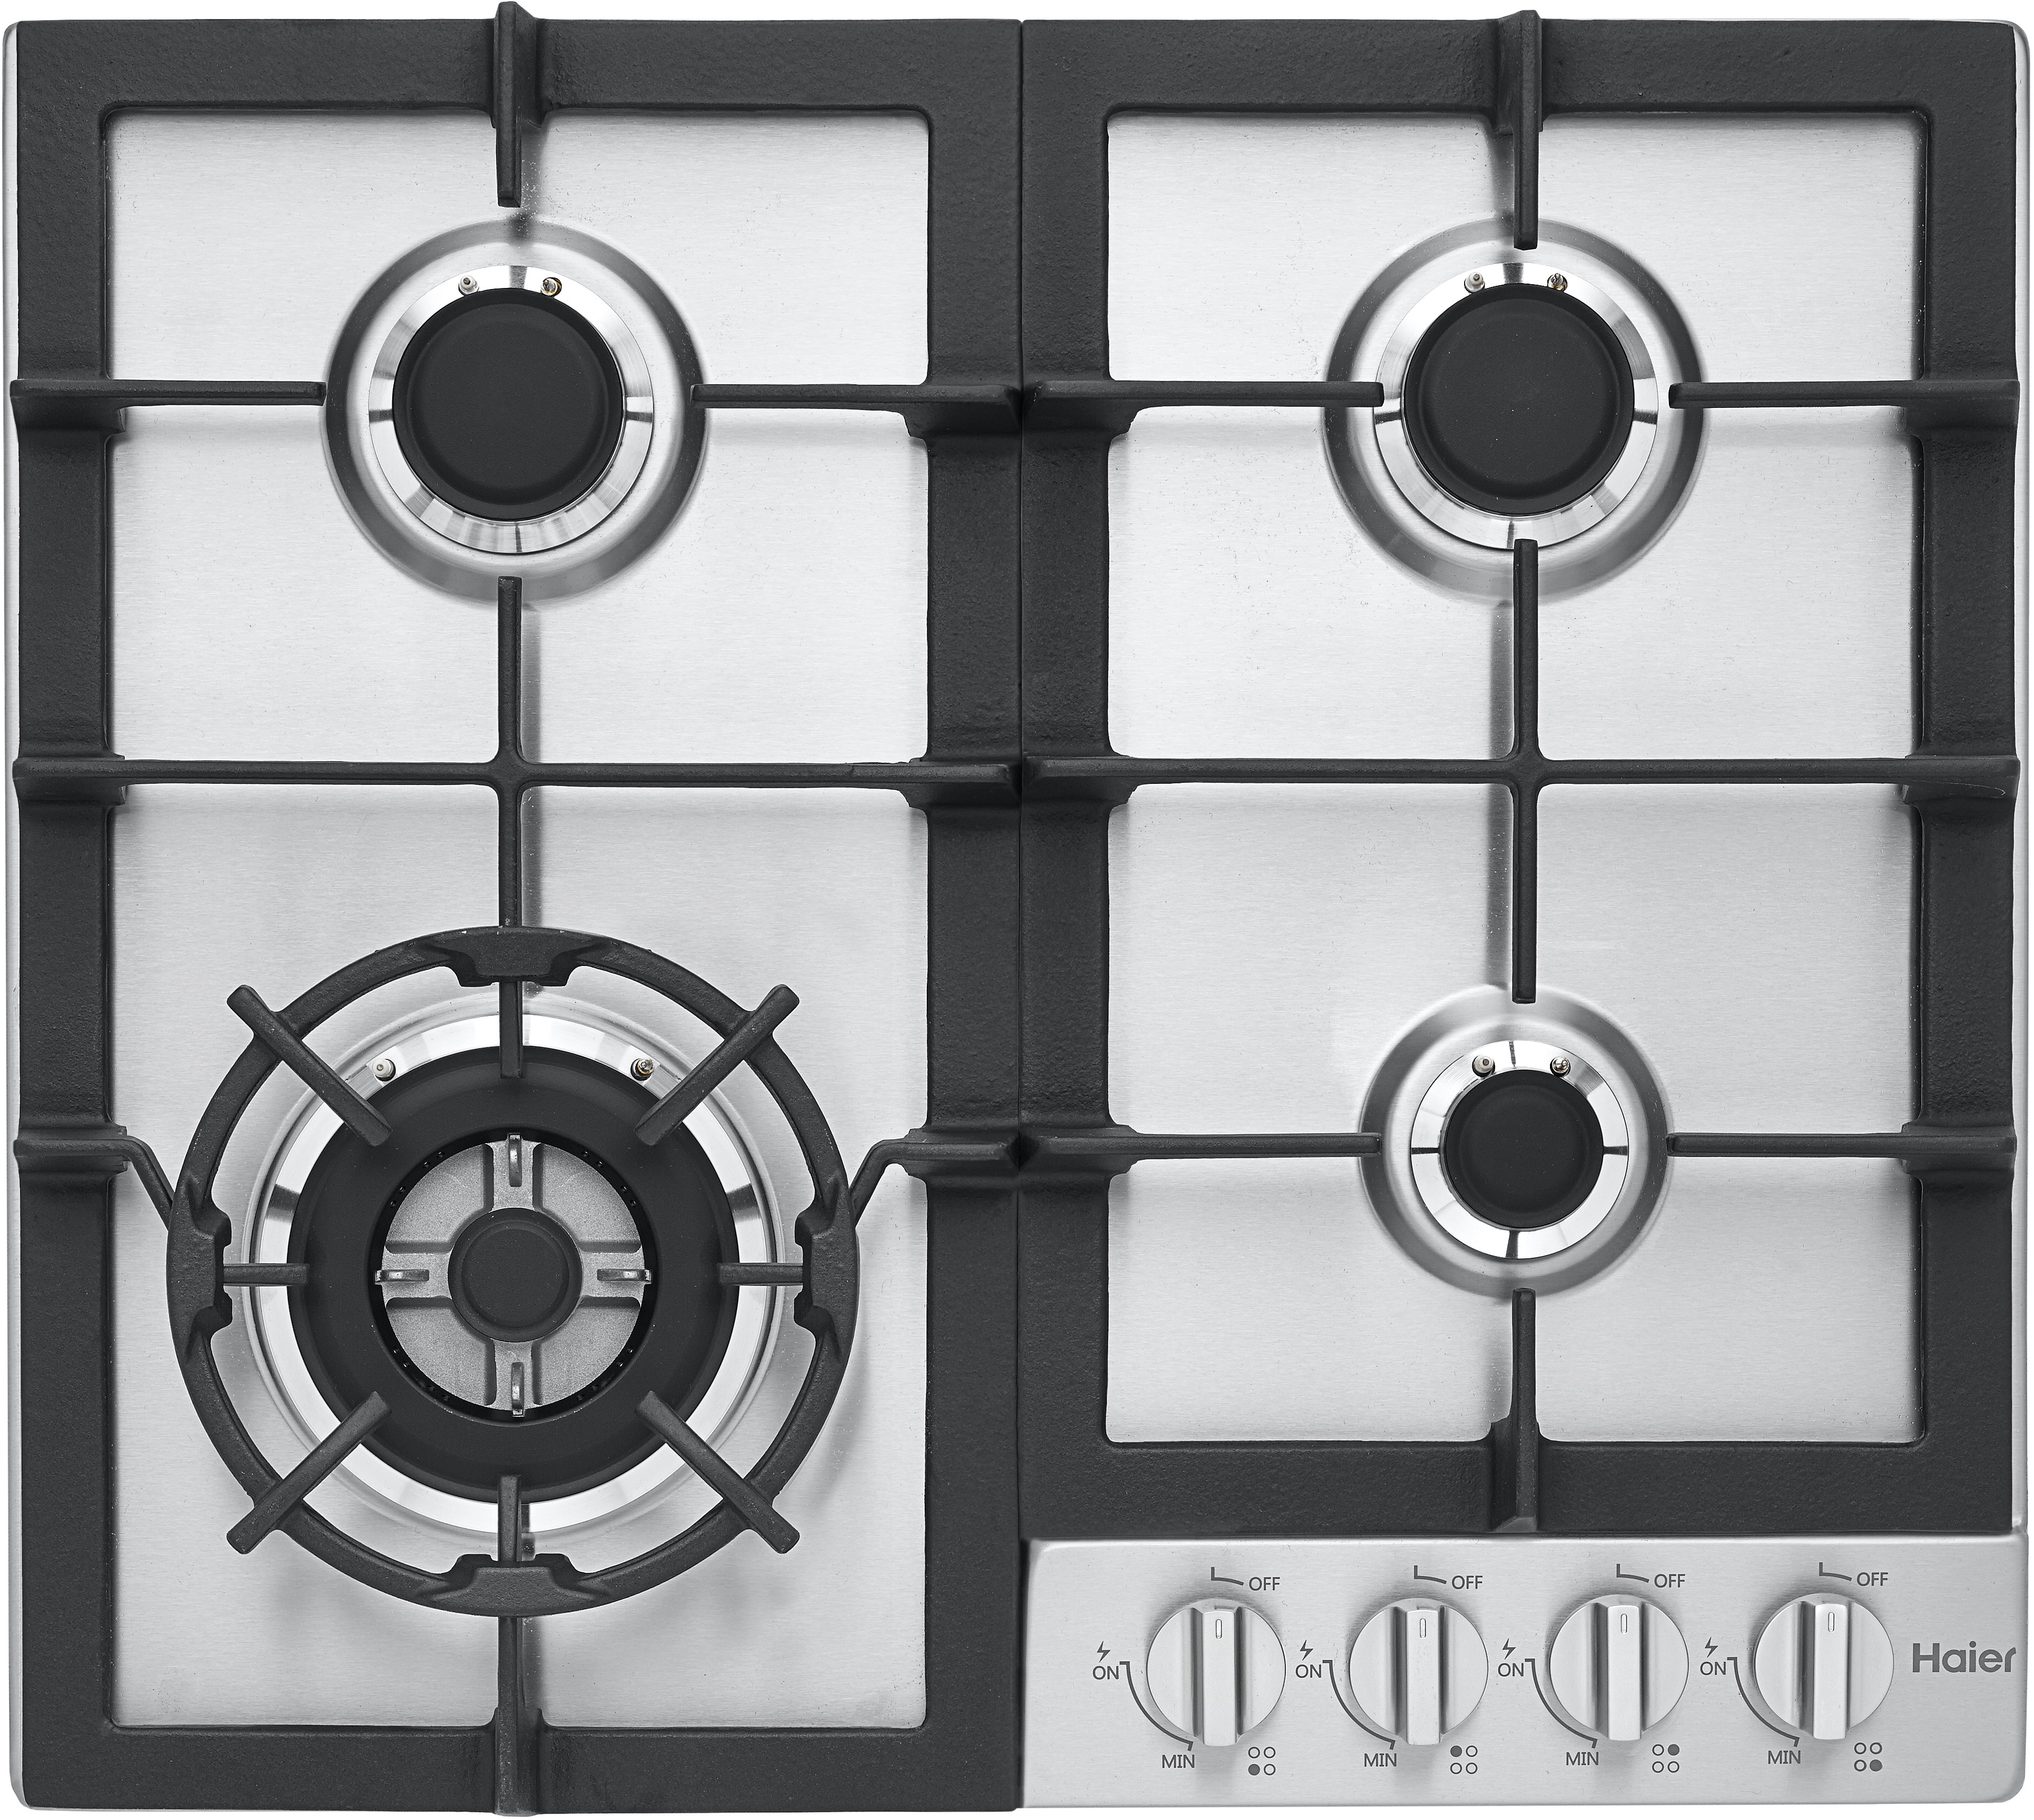 Haier Hcc2230ags 24 Inch Gas Cooktop